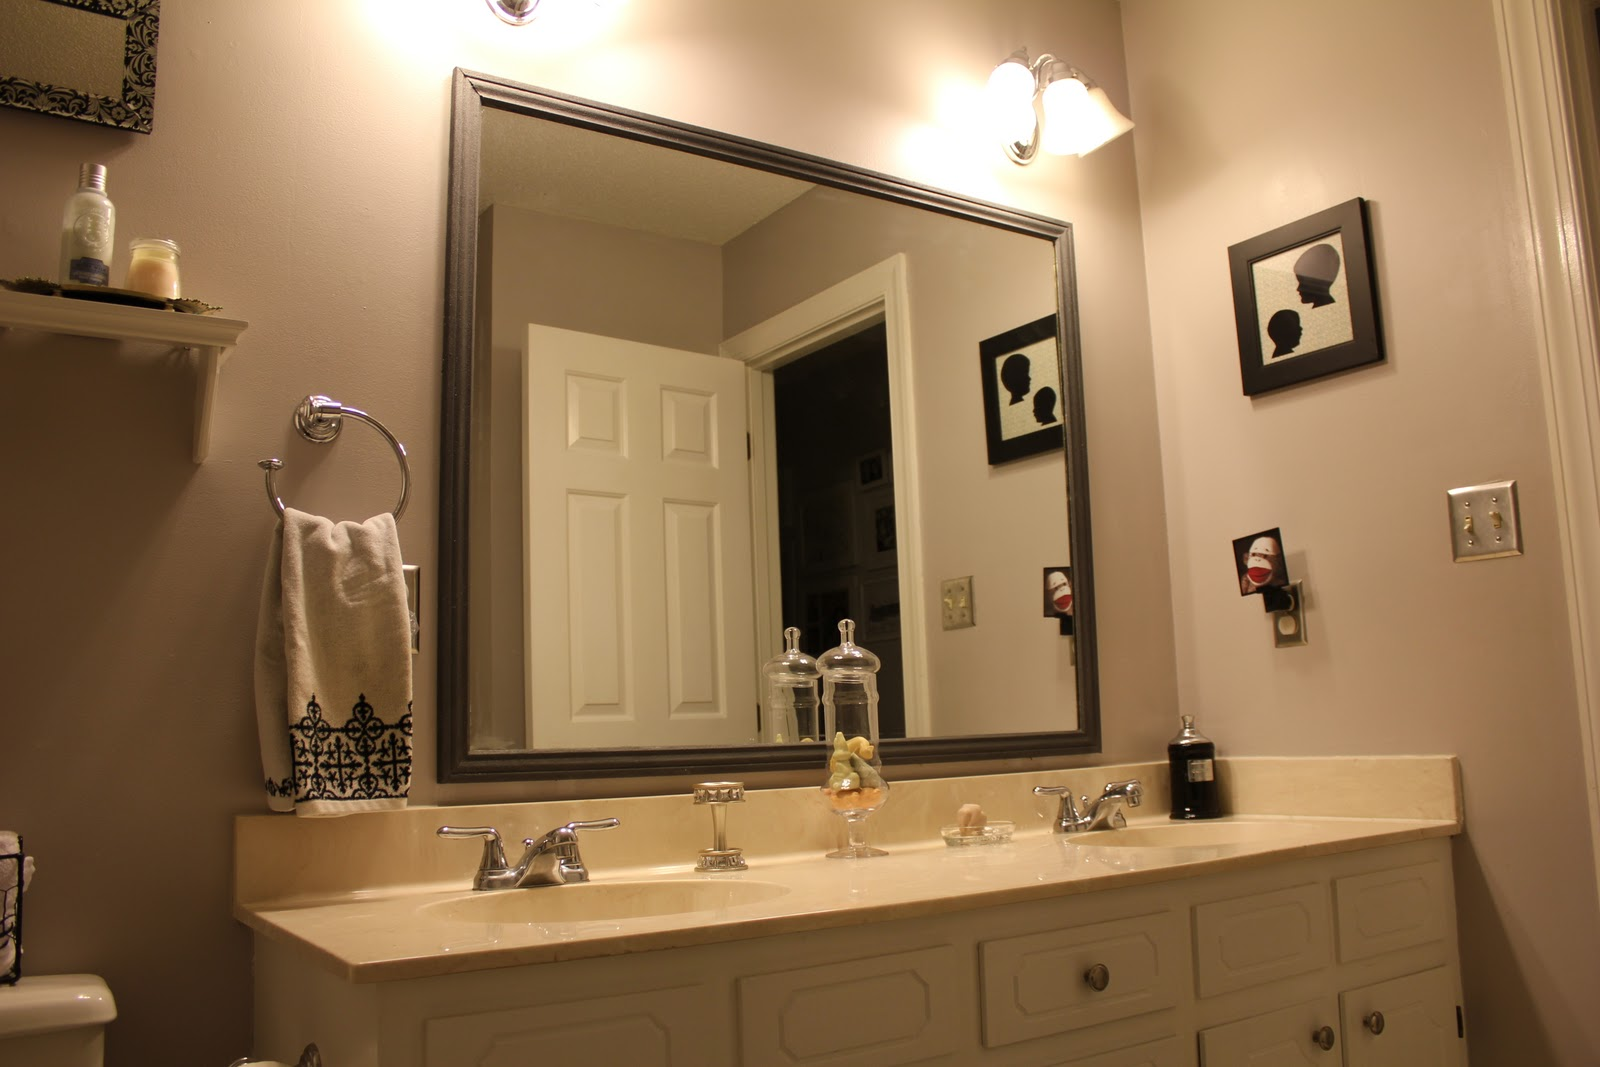 PeaHen Pad: Framing an existing bathroom mirror